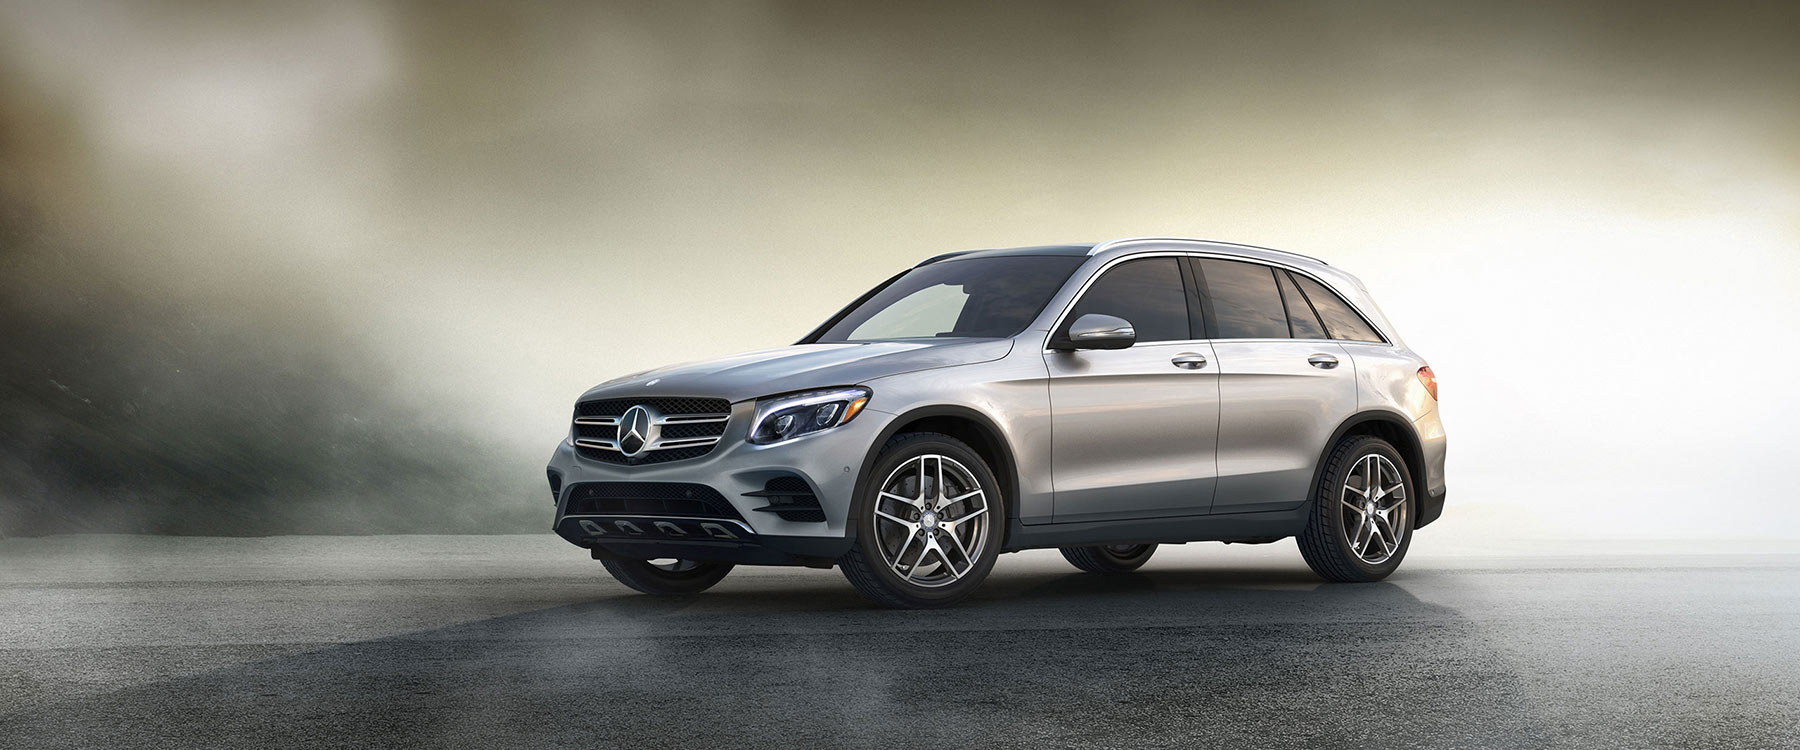 2019 mercedes benz glc 300 specs features mb of chicago. Black Bedroom Furniture Sets. Home Design Ideas